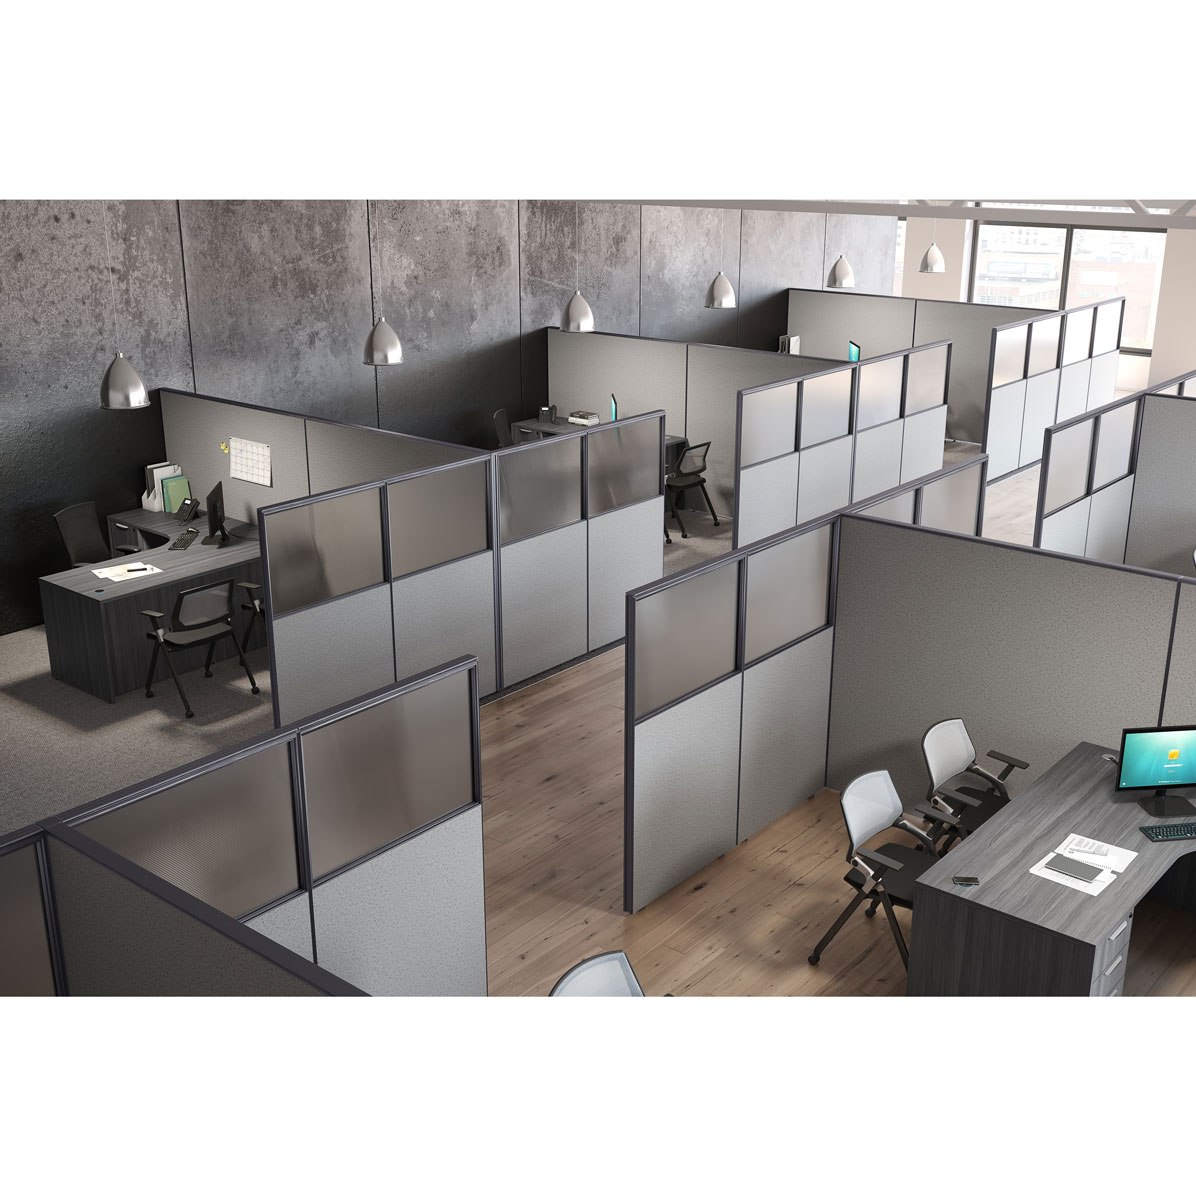 OfficeSource OS Panels Complete Package 8 – As Shown with Desks